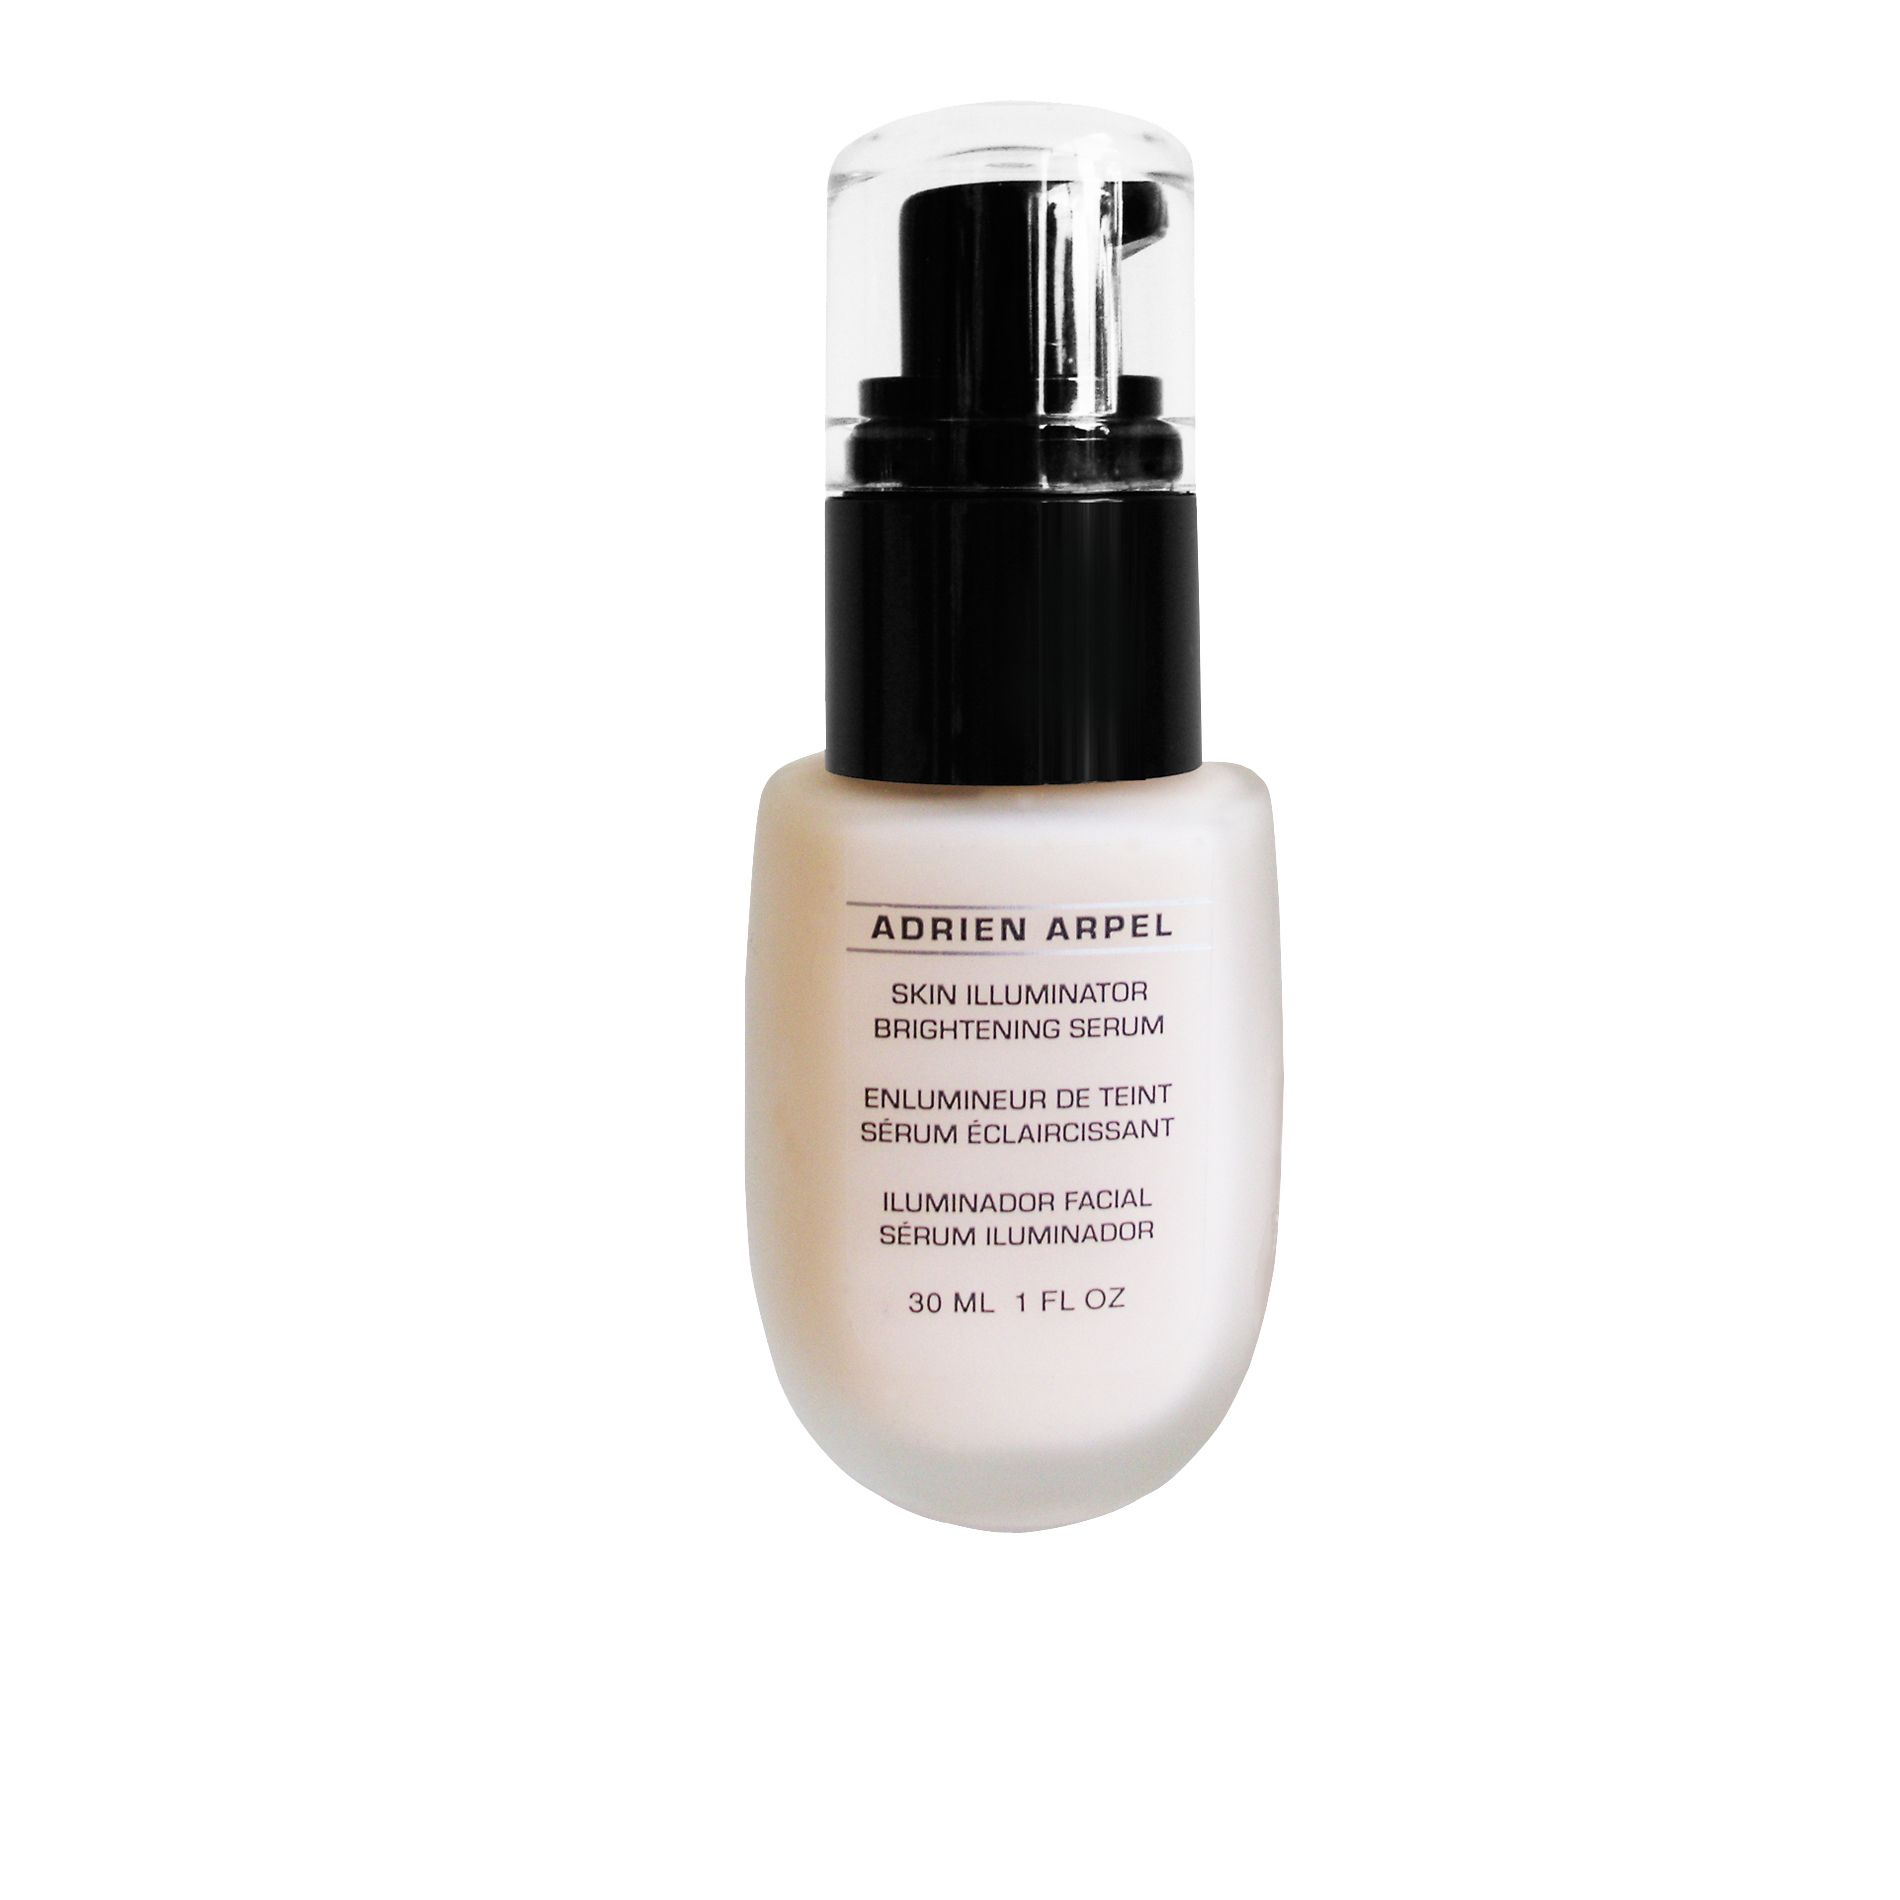 'Adrien Arpel Skin Illuminator Brightening Serum